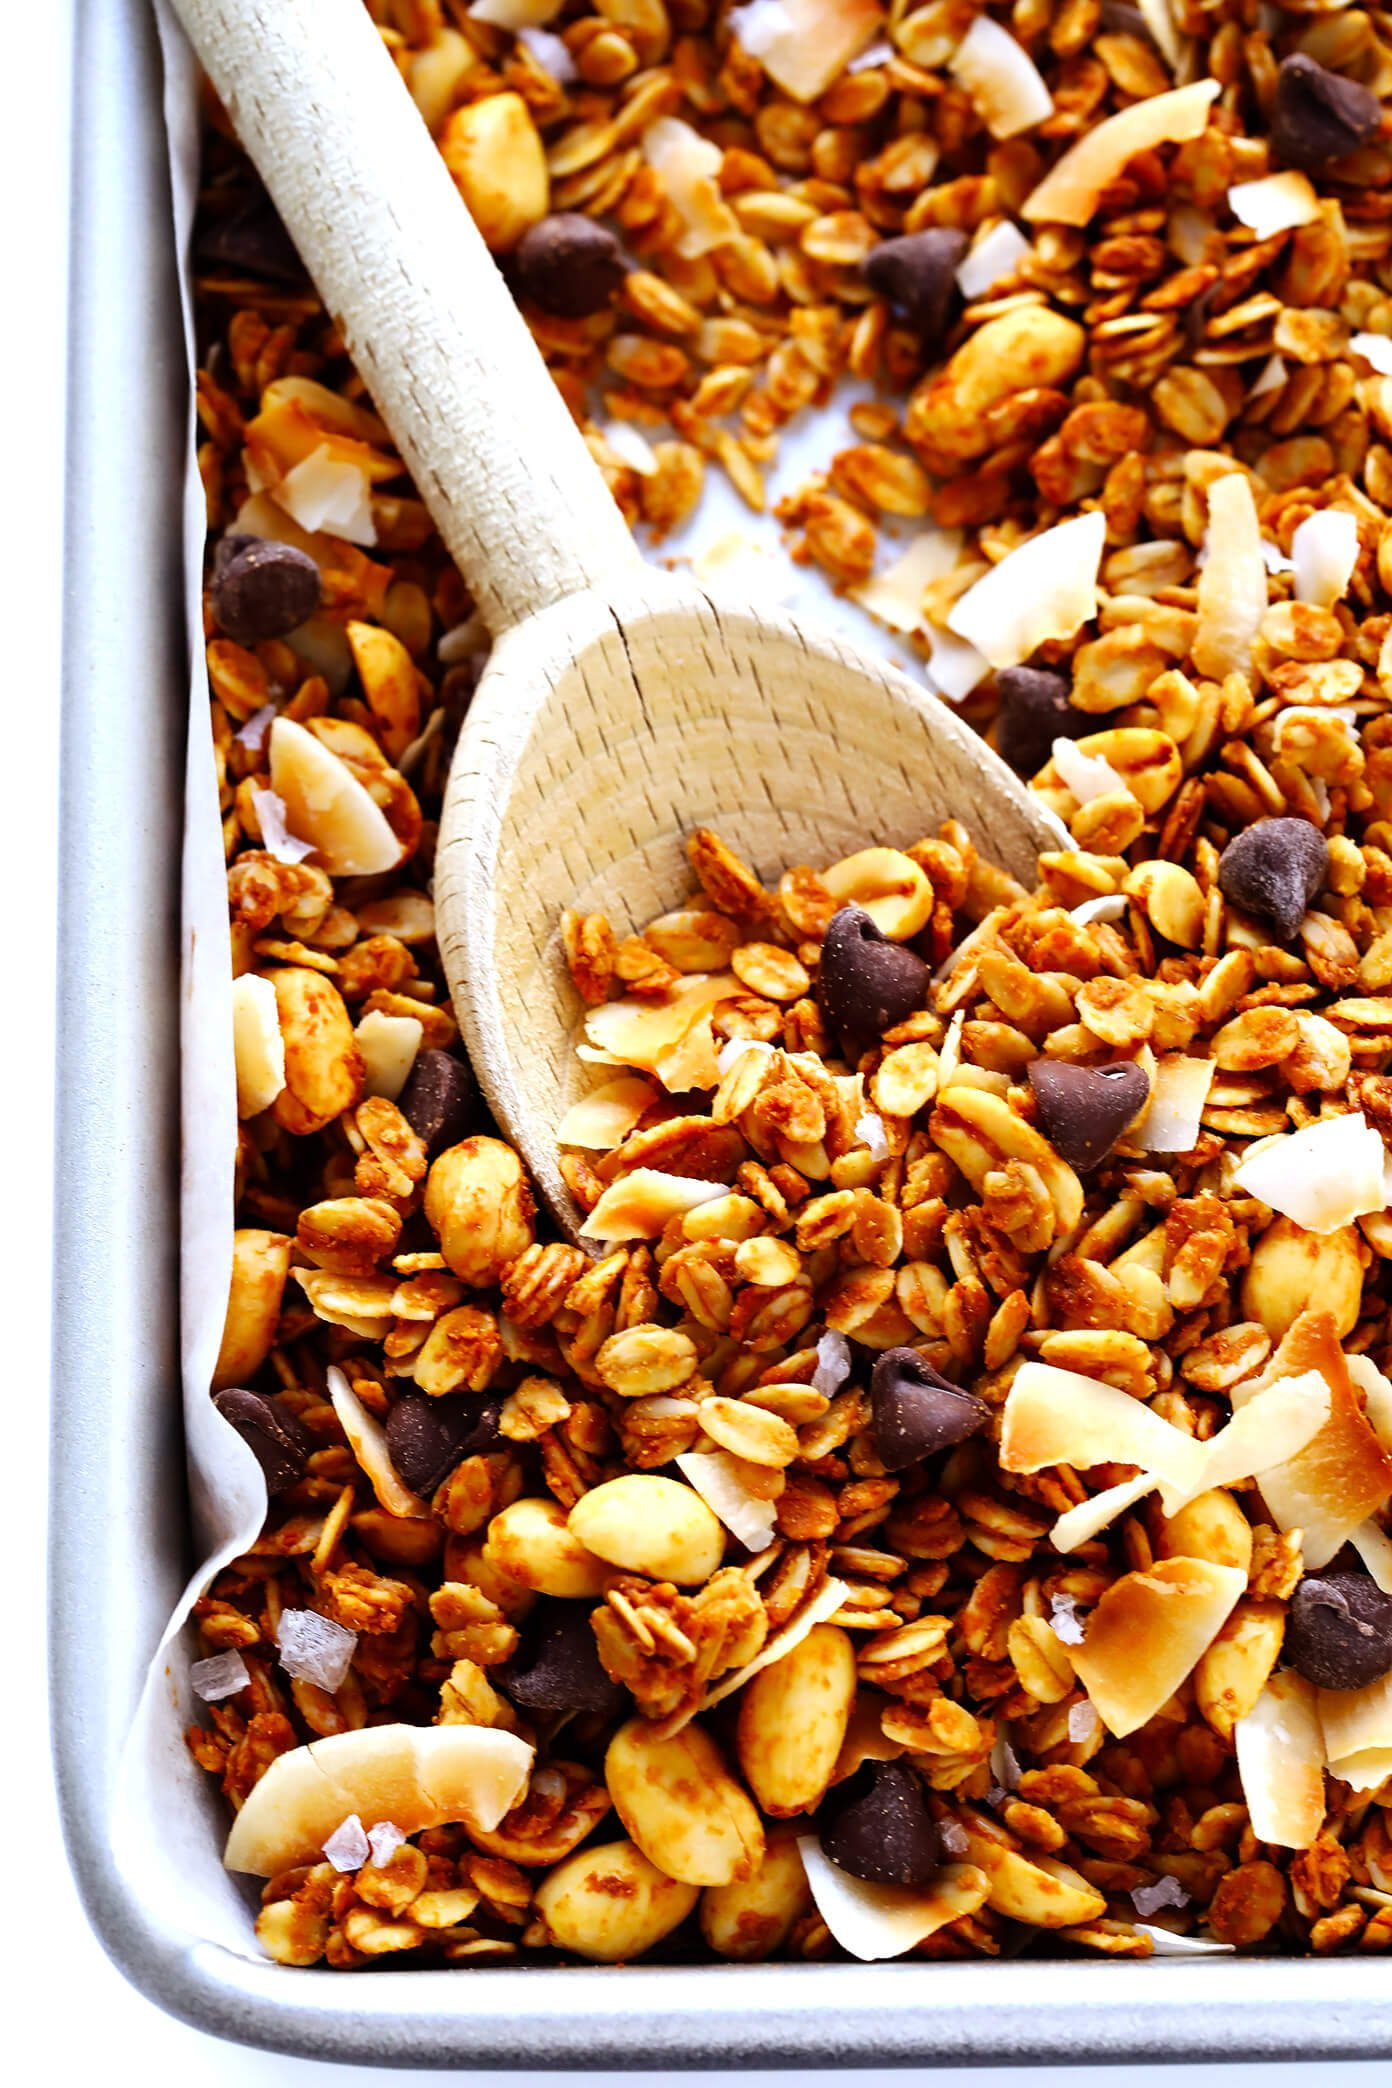 Peanut Butter Granola with Chocolate Chips Closeup